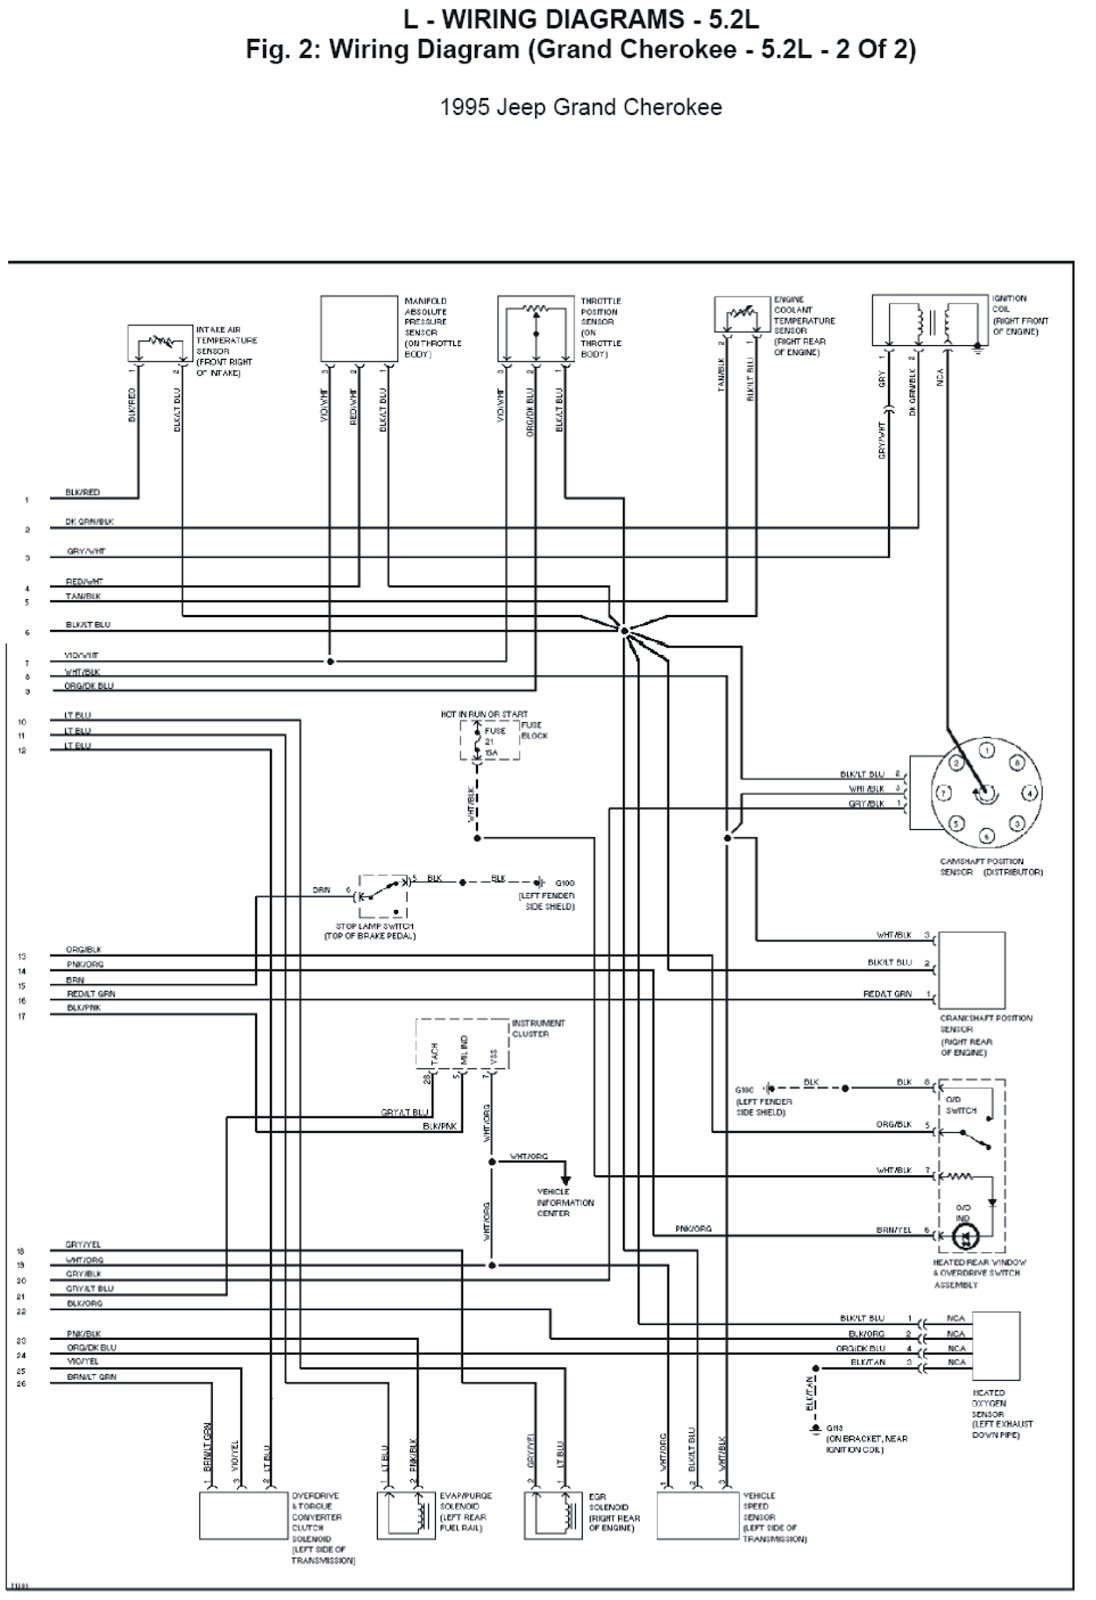 small resolution of 1997 grand cherokee trailer wiring diagram 1990 jeep cherokee laredo wiring diagramrh svlc